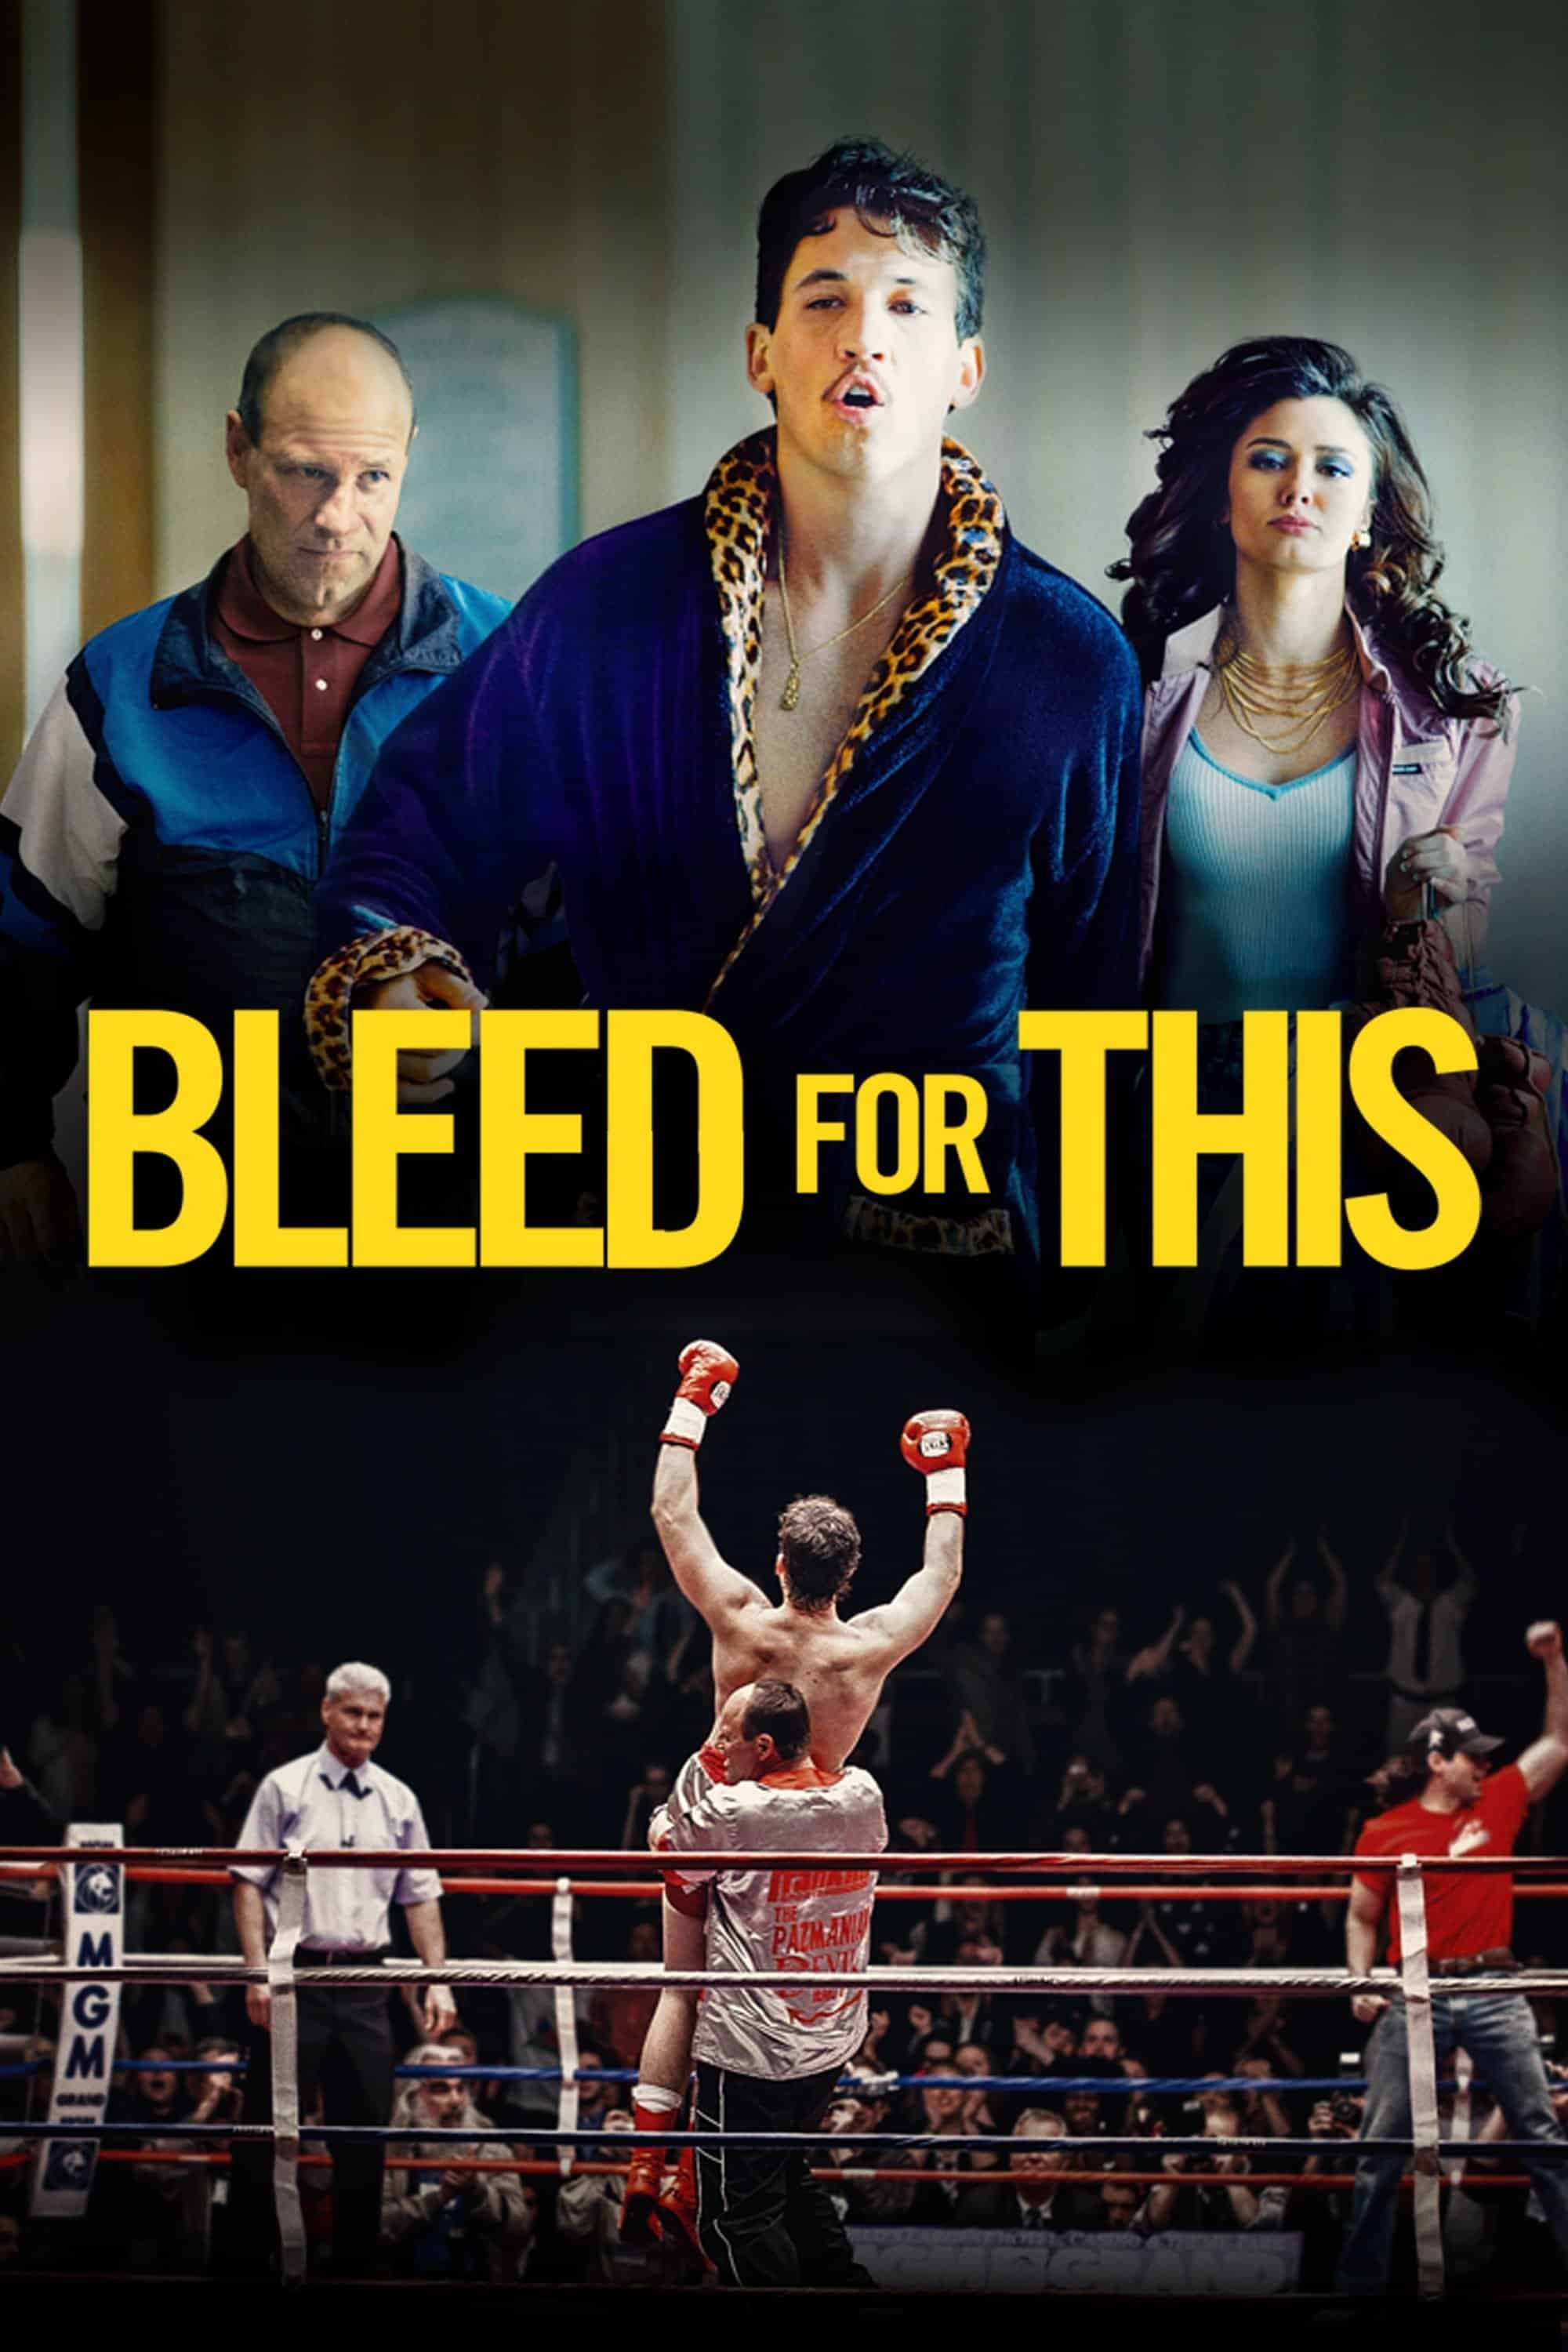 Bleed for This, 2016